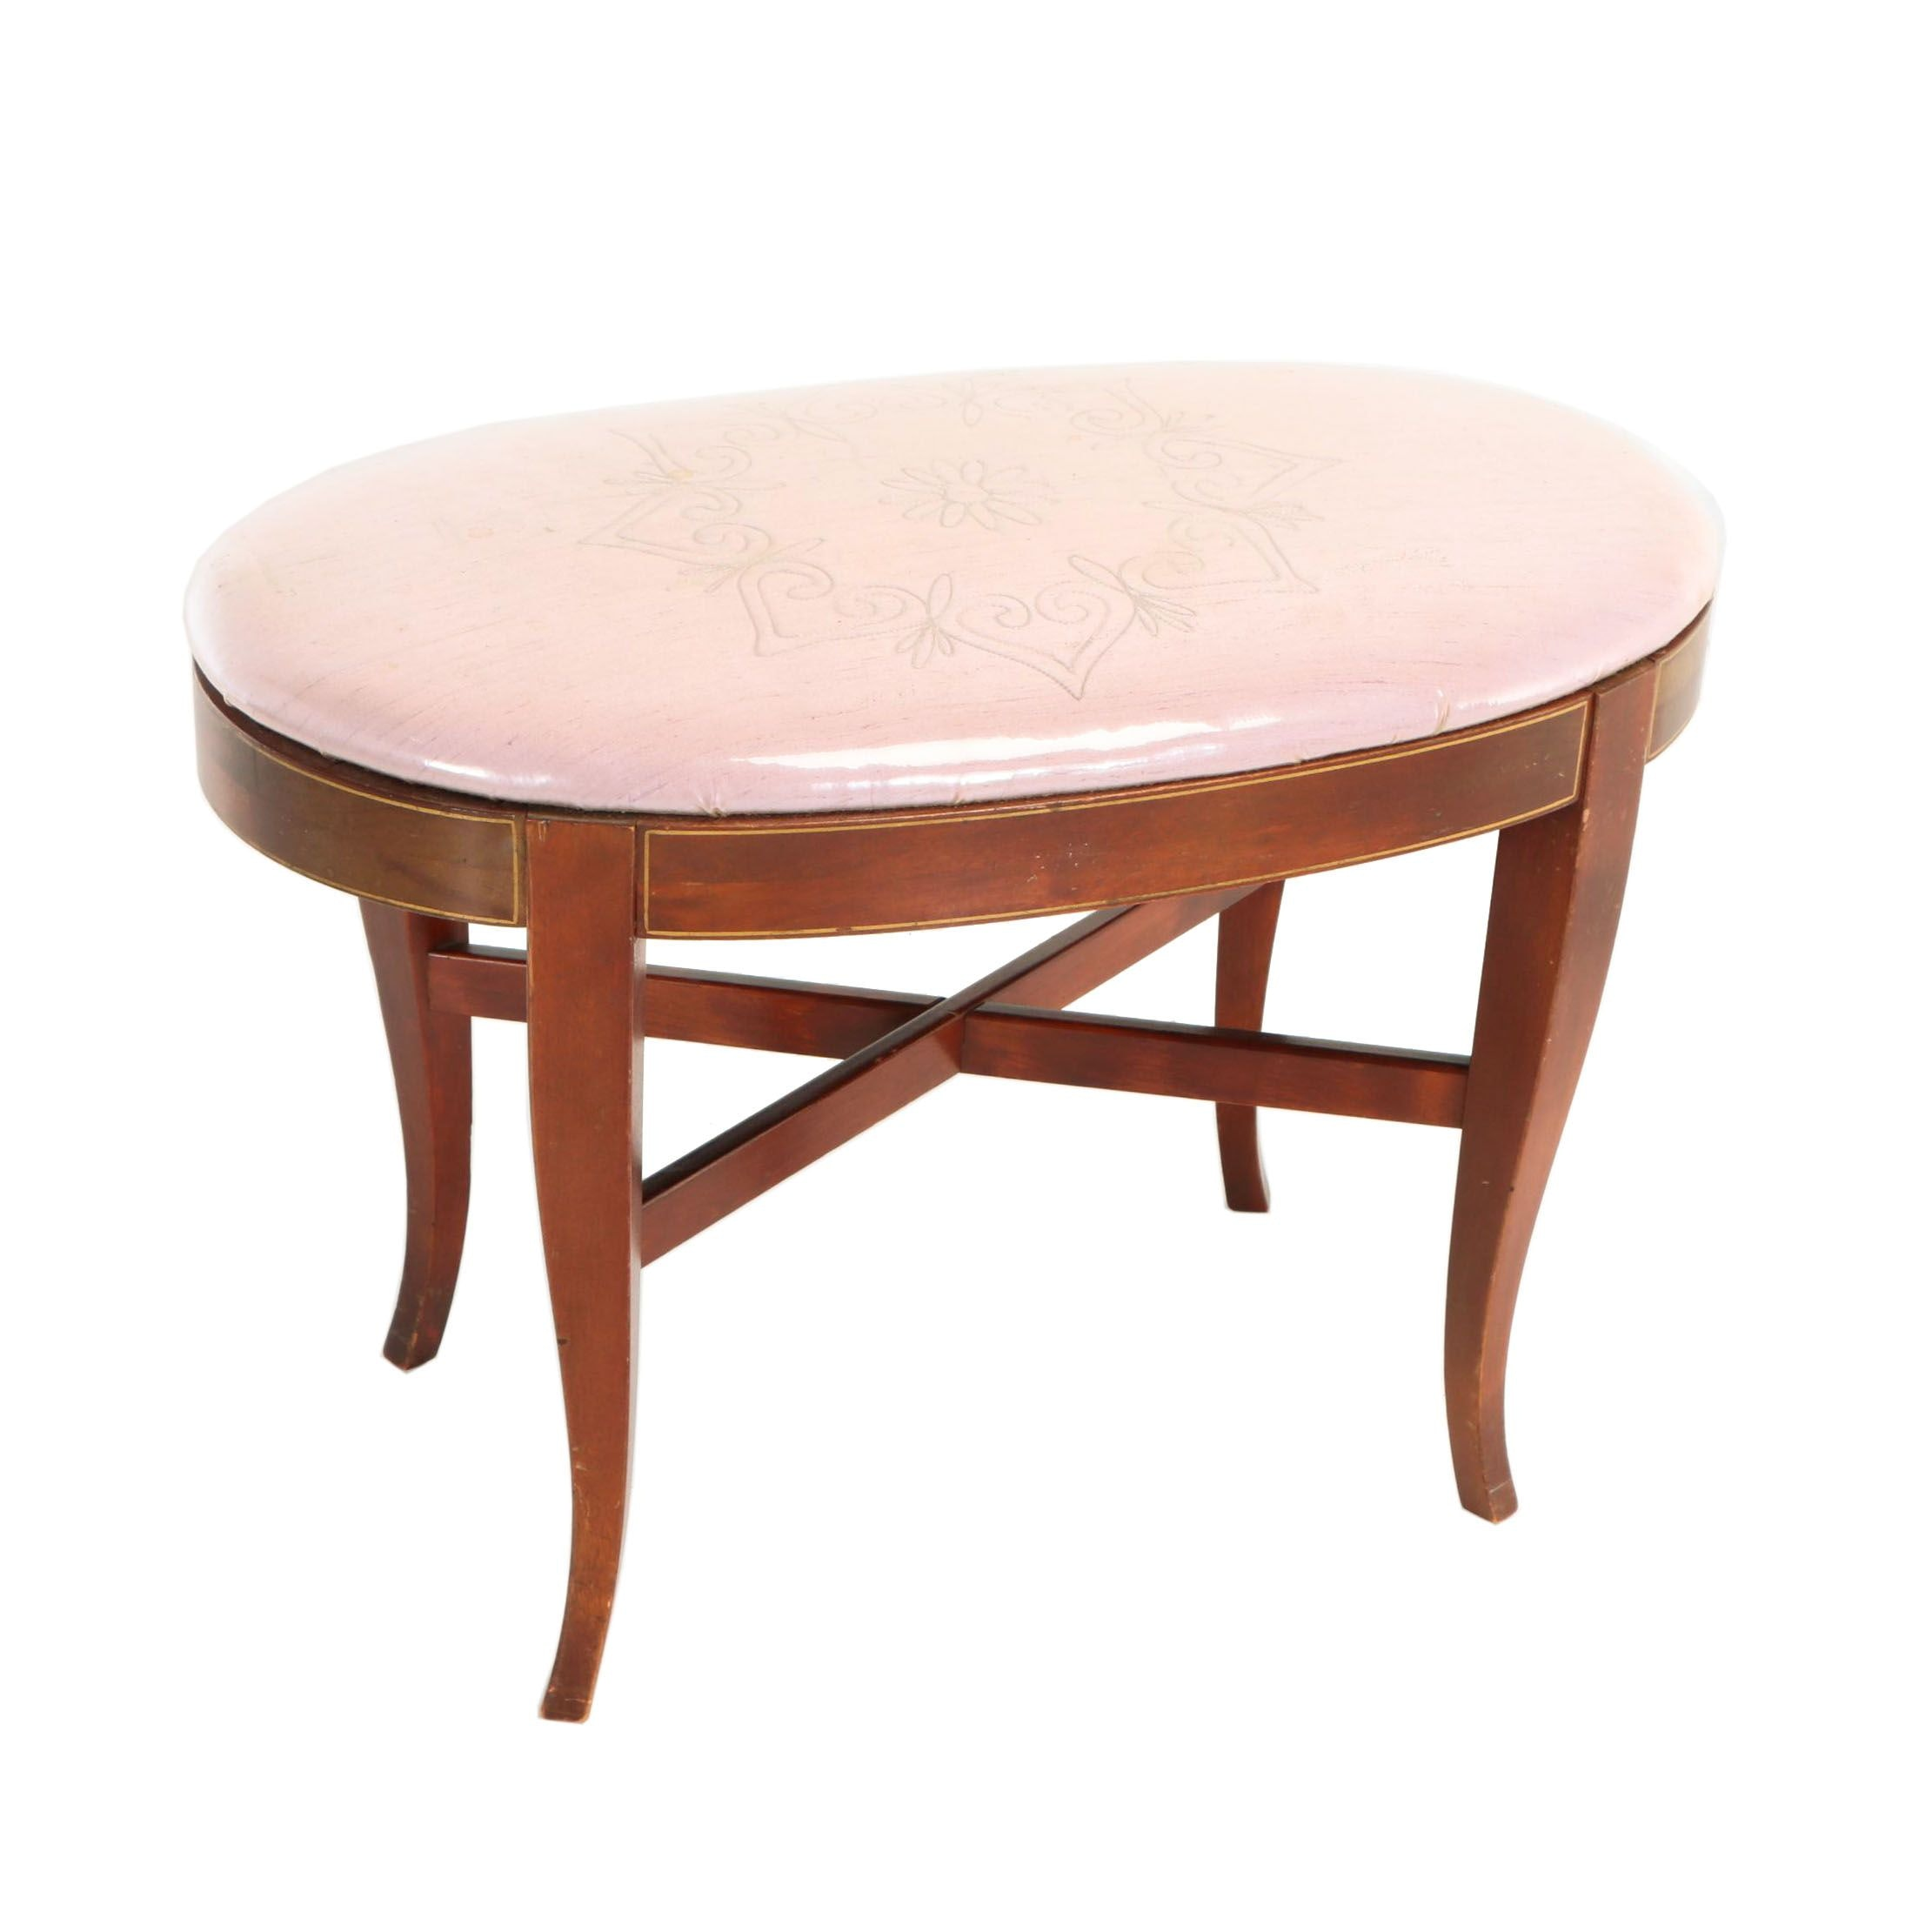 Mahogany-Stained and Paint-Decorated Stool, 20th Century